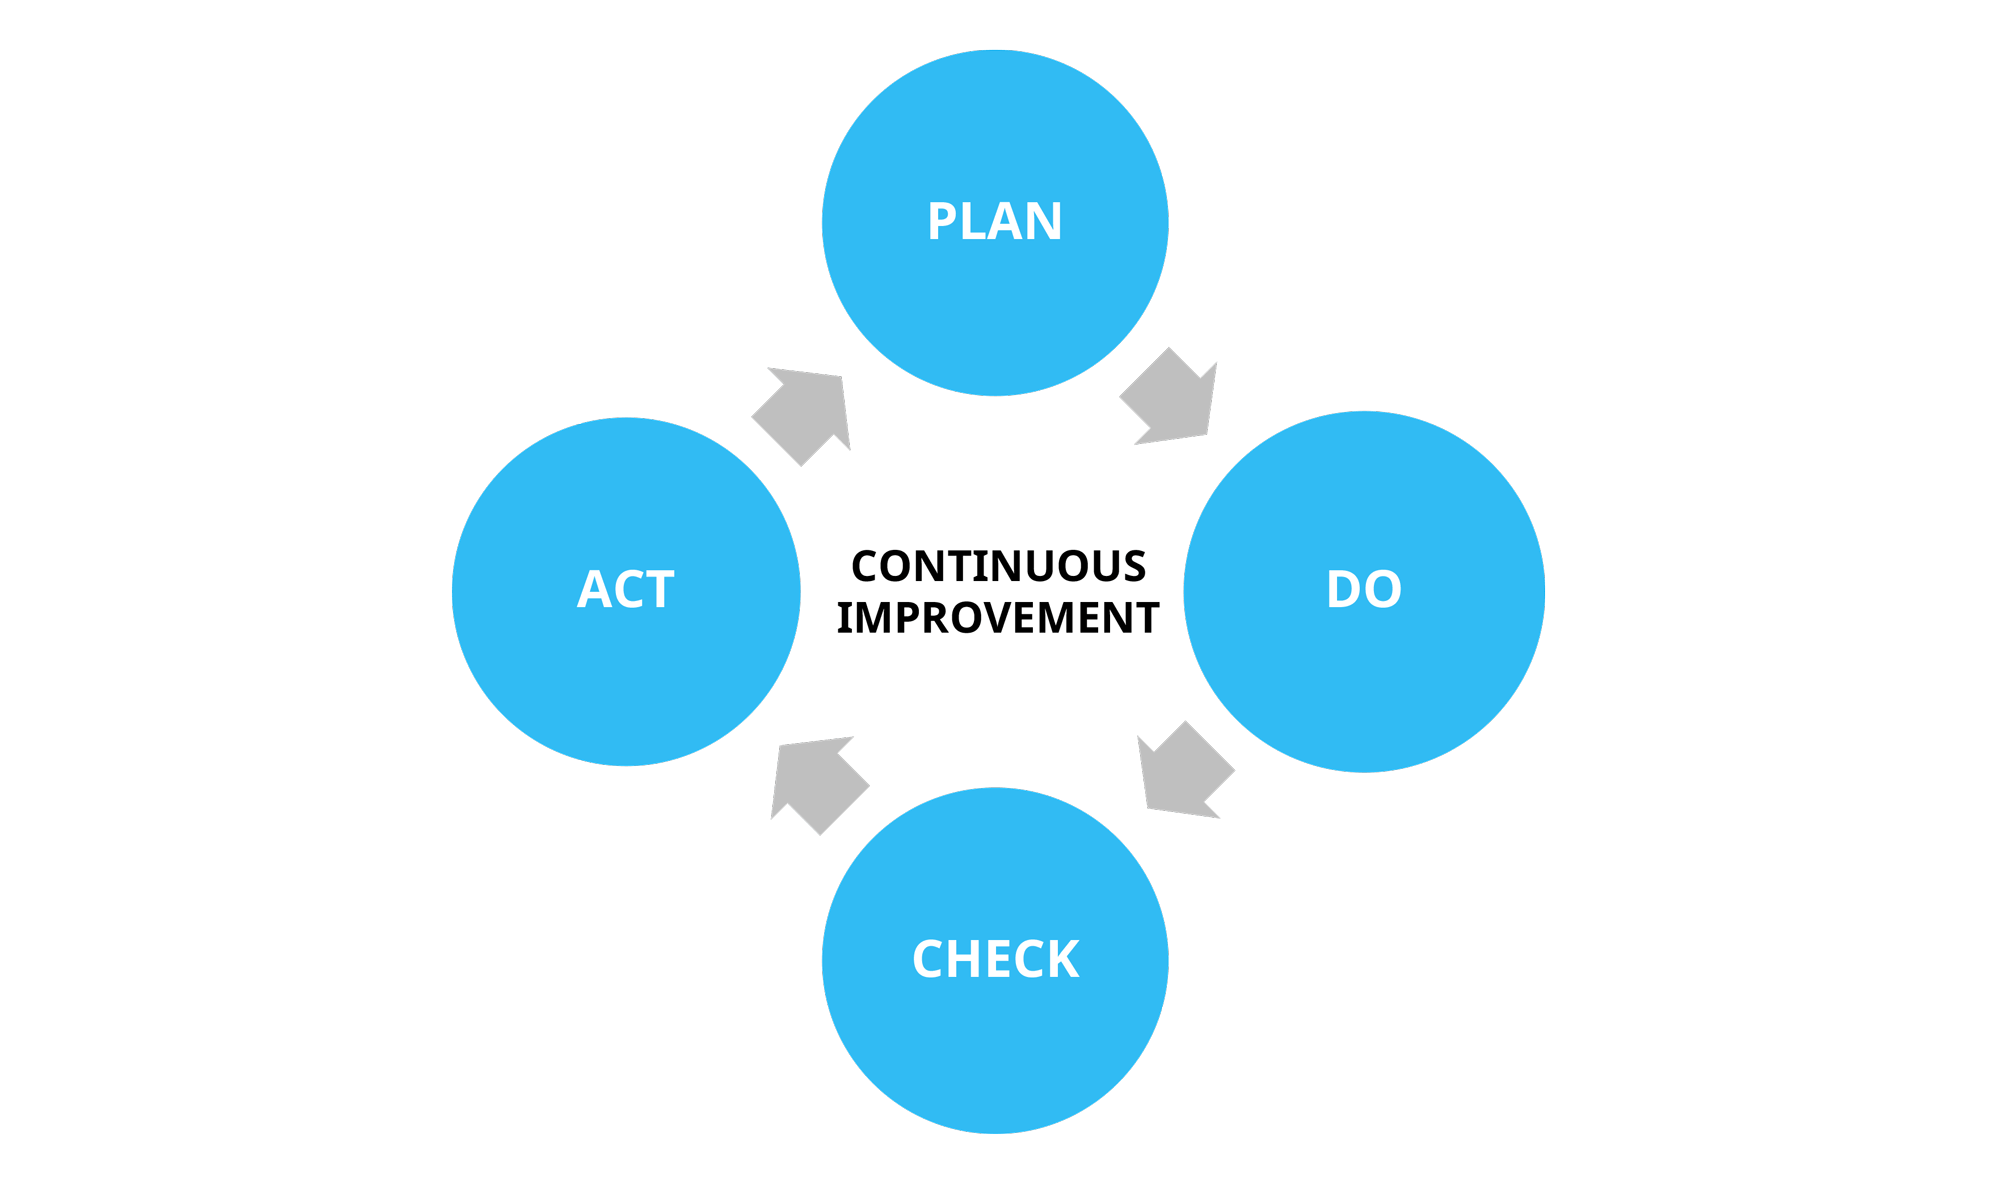 PDCA or the Deming cycle